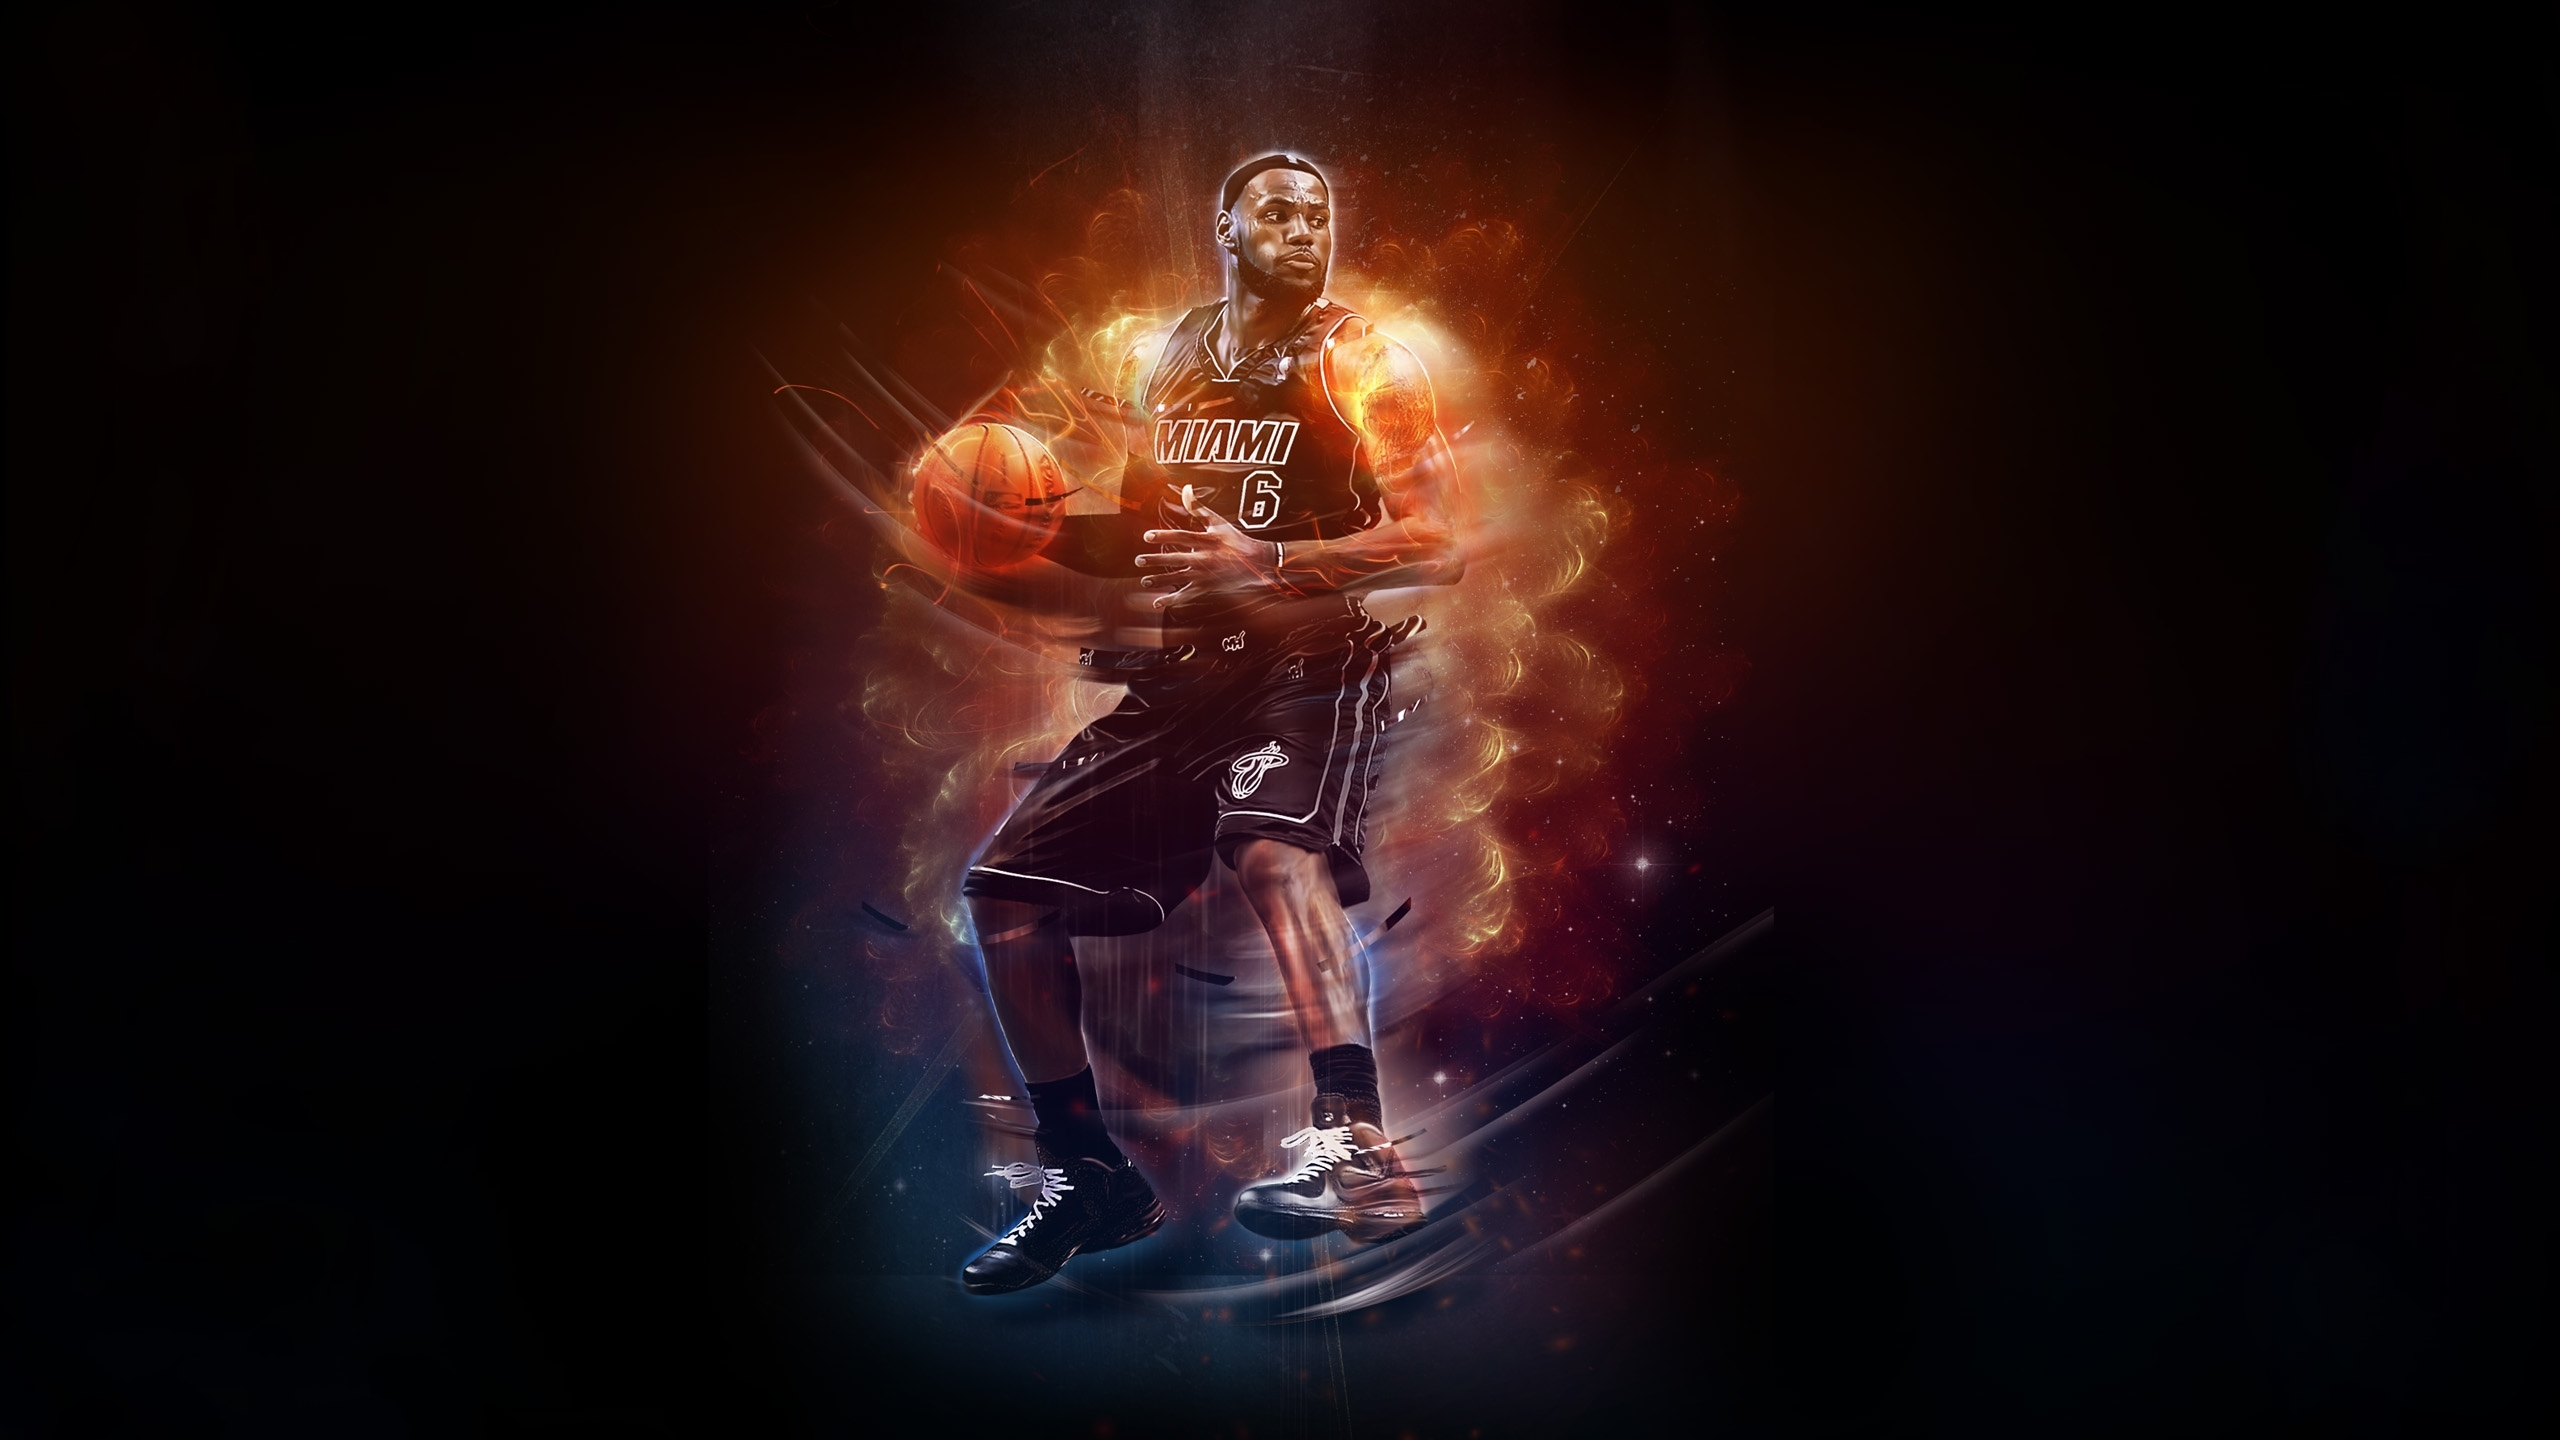 basketball miami heat 6 player fire wallpapers photos pictures 2560x1440